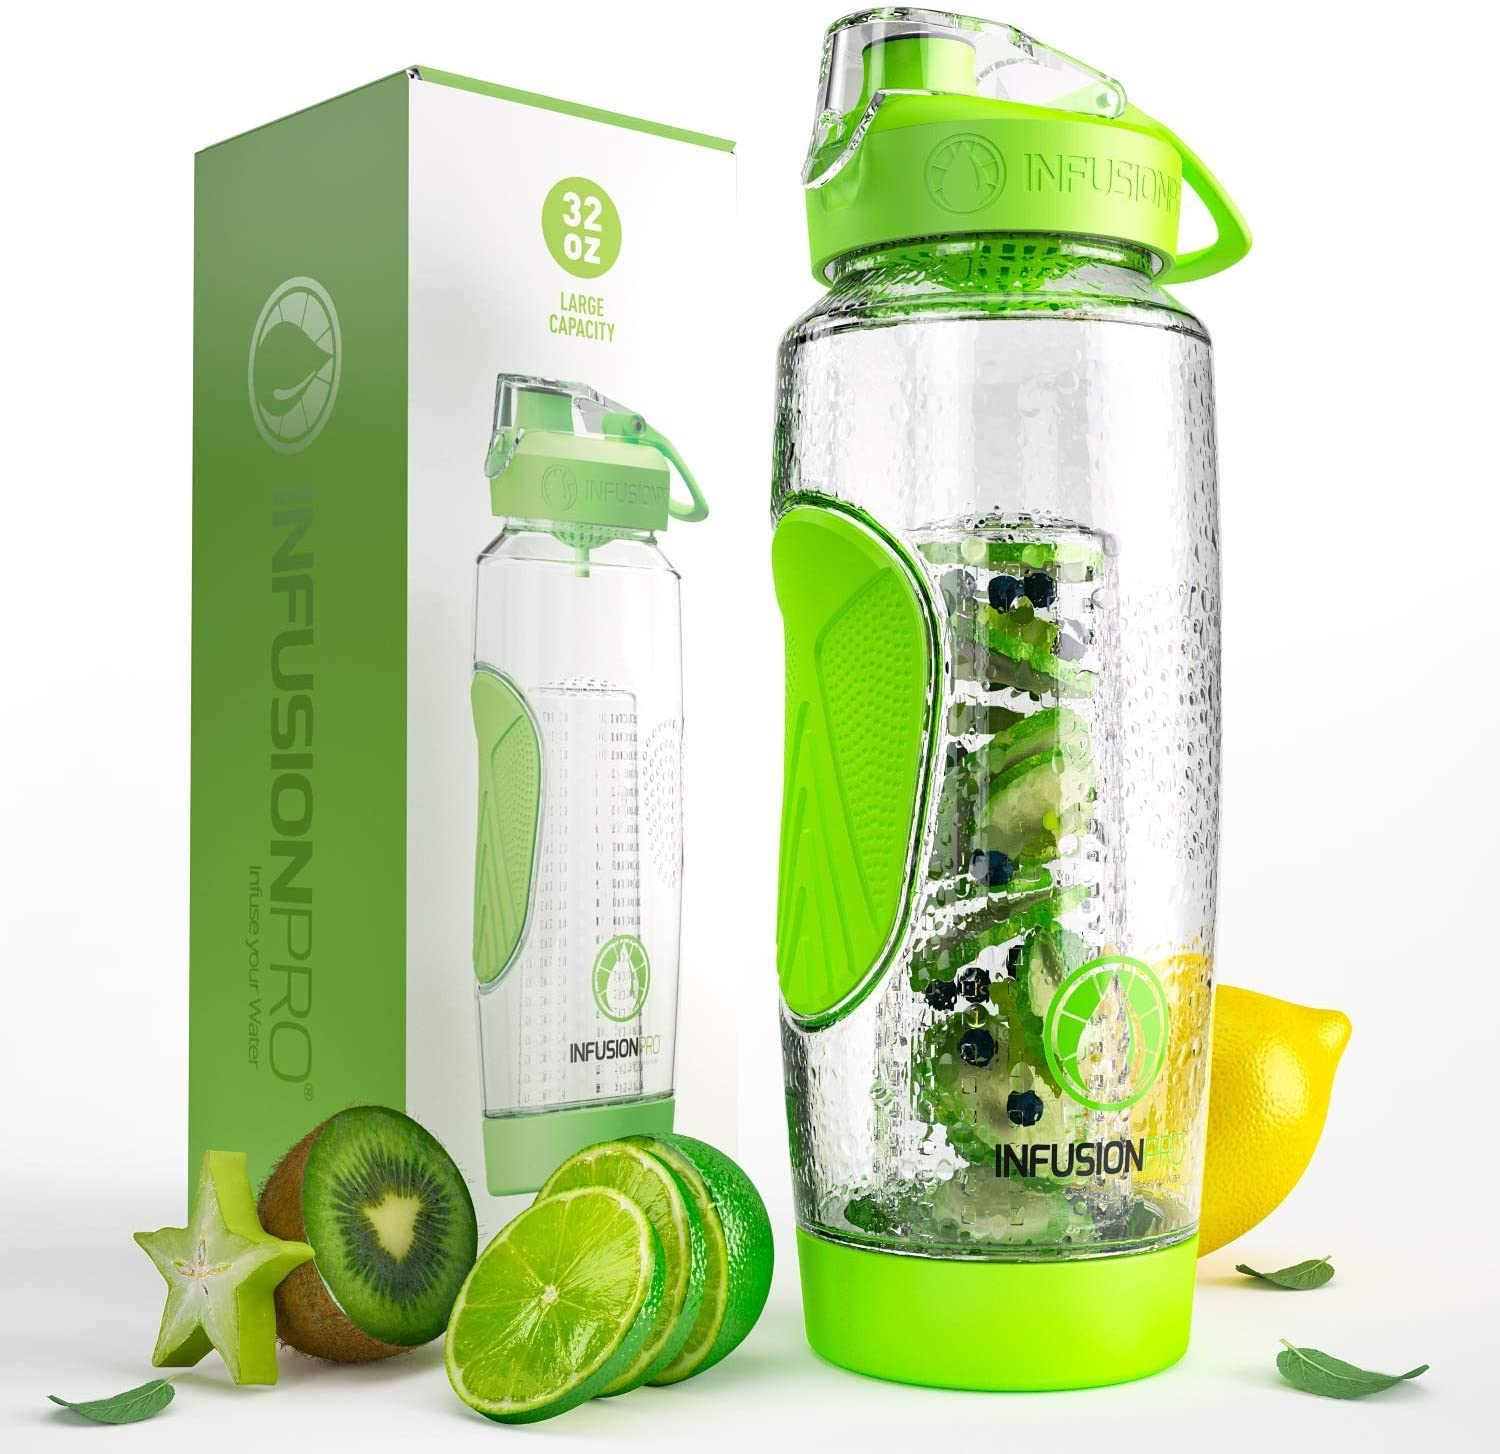 Infusion Pro 32 oz. Fruit Infused Water Bottle With Insulated Sleeve